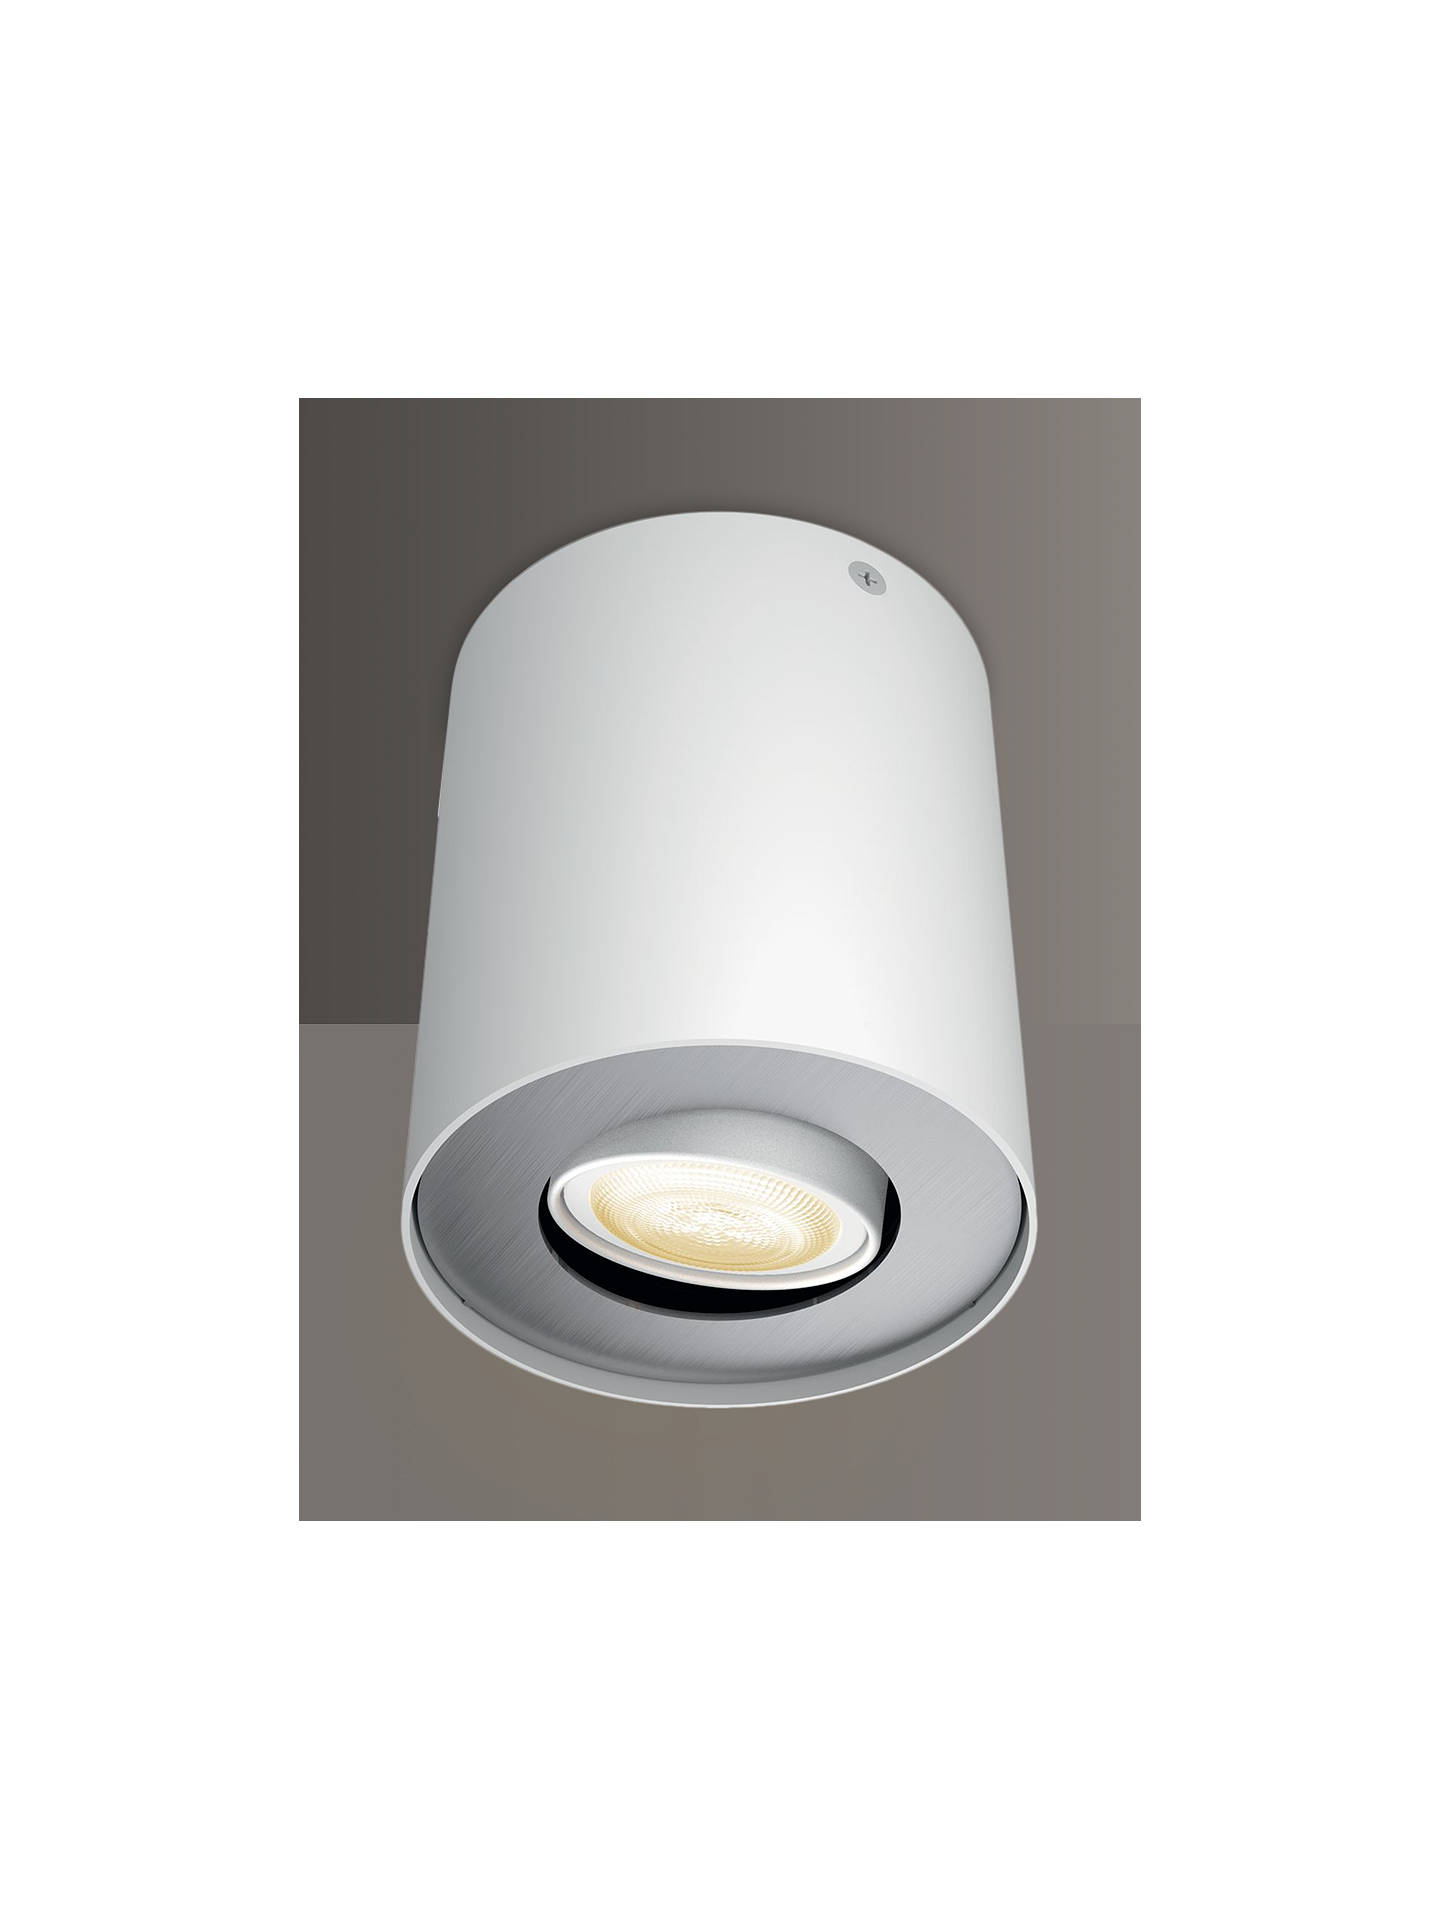 BuyPhilips Hue White Ambiance LED Pillar Spotlight Extension with Dimmer Switch, White Online at johnlewis.com